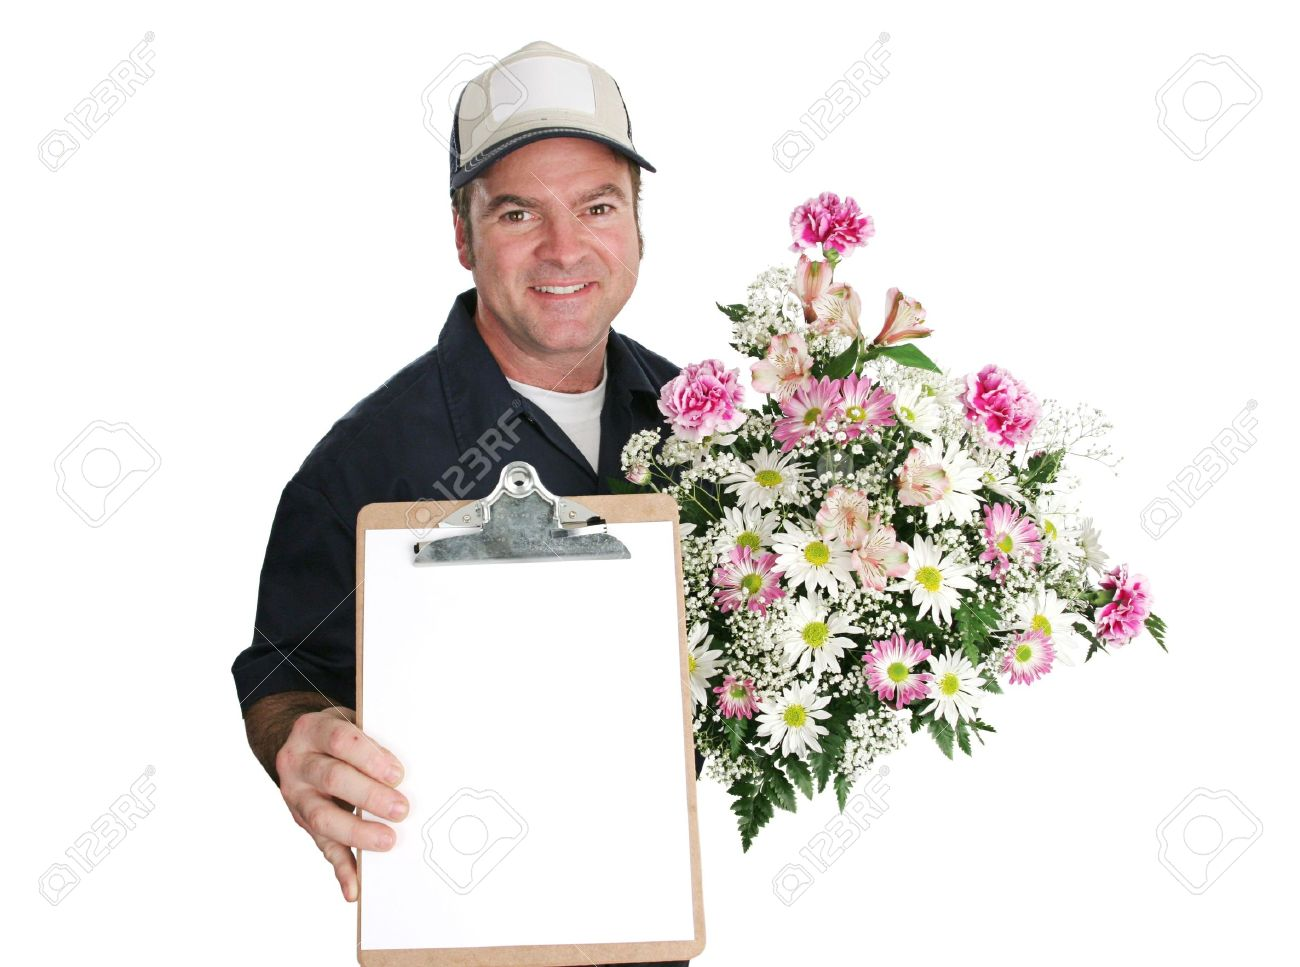 A Flower Delivery Man Holding A Beautiful Bouquet And Waiting ...